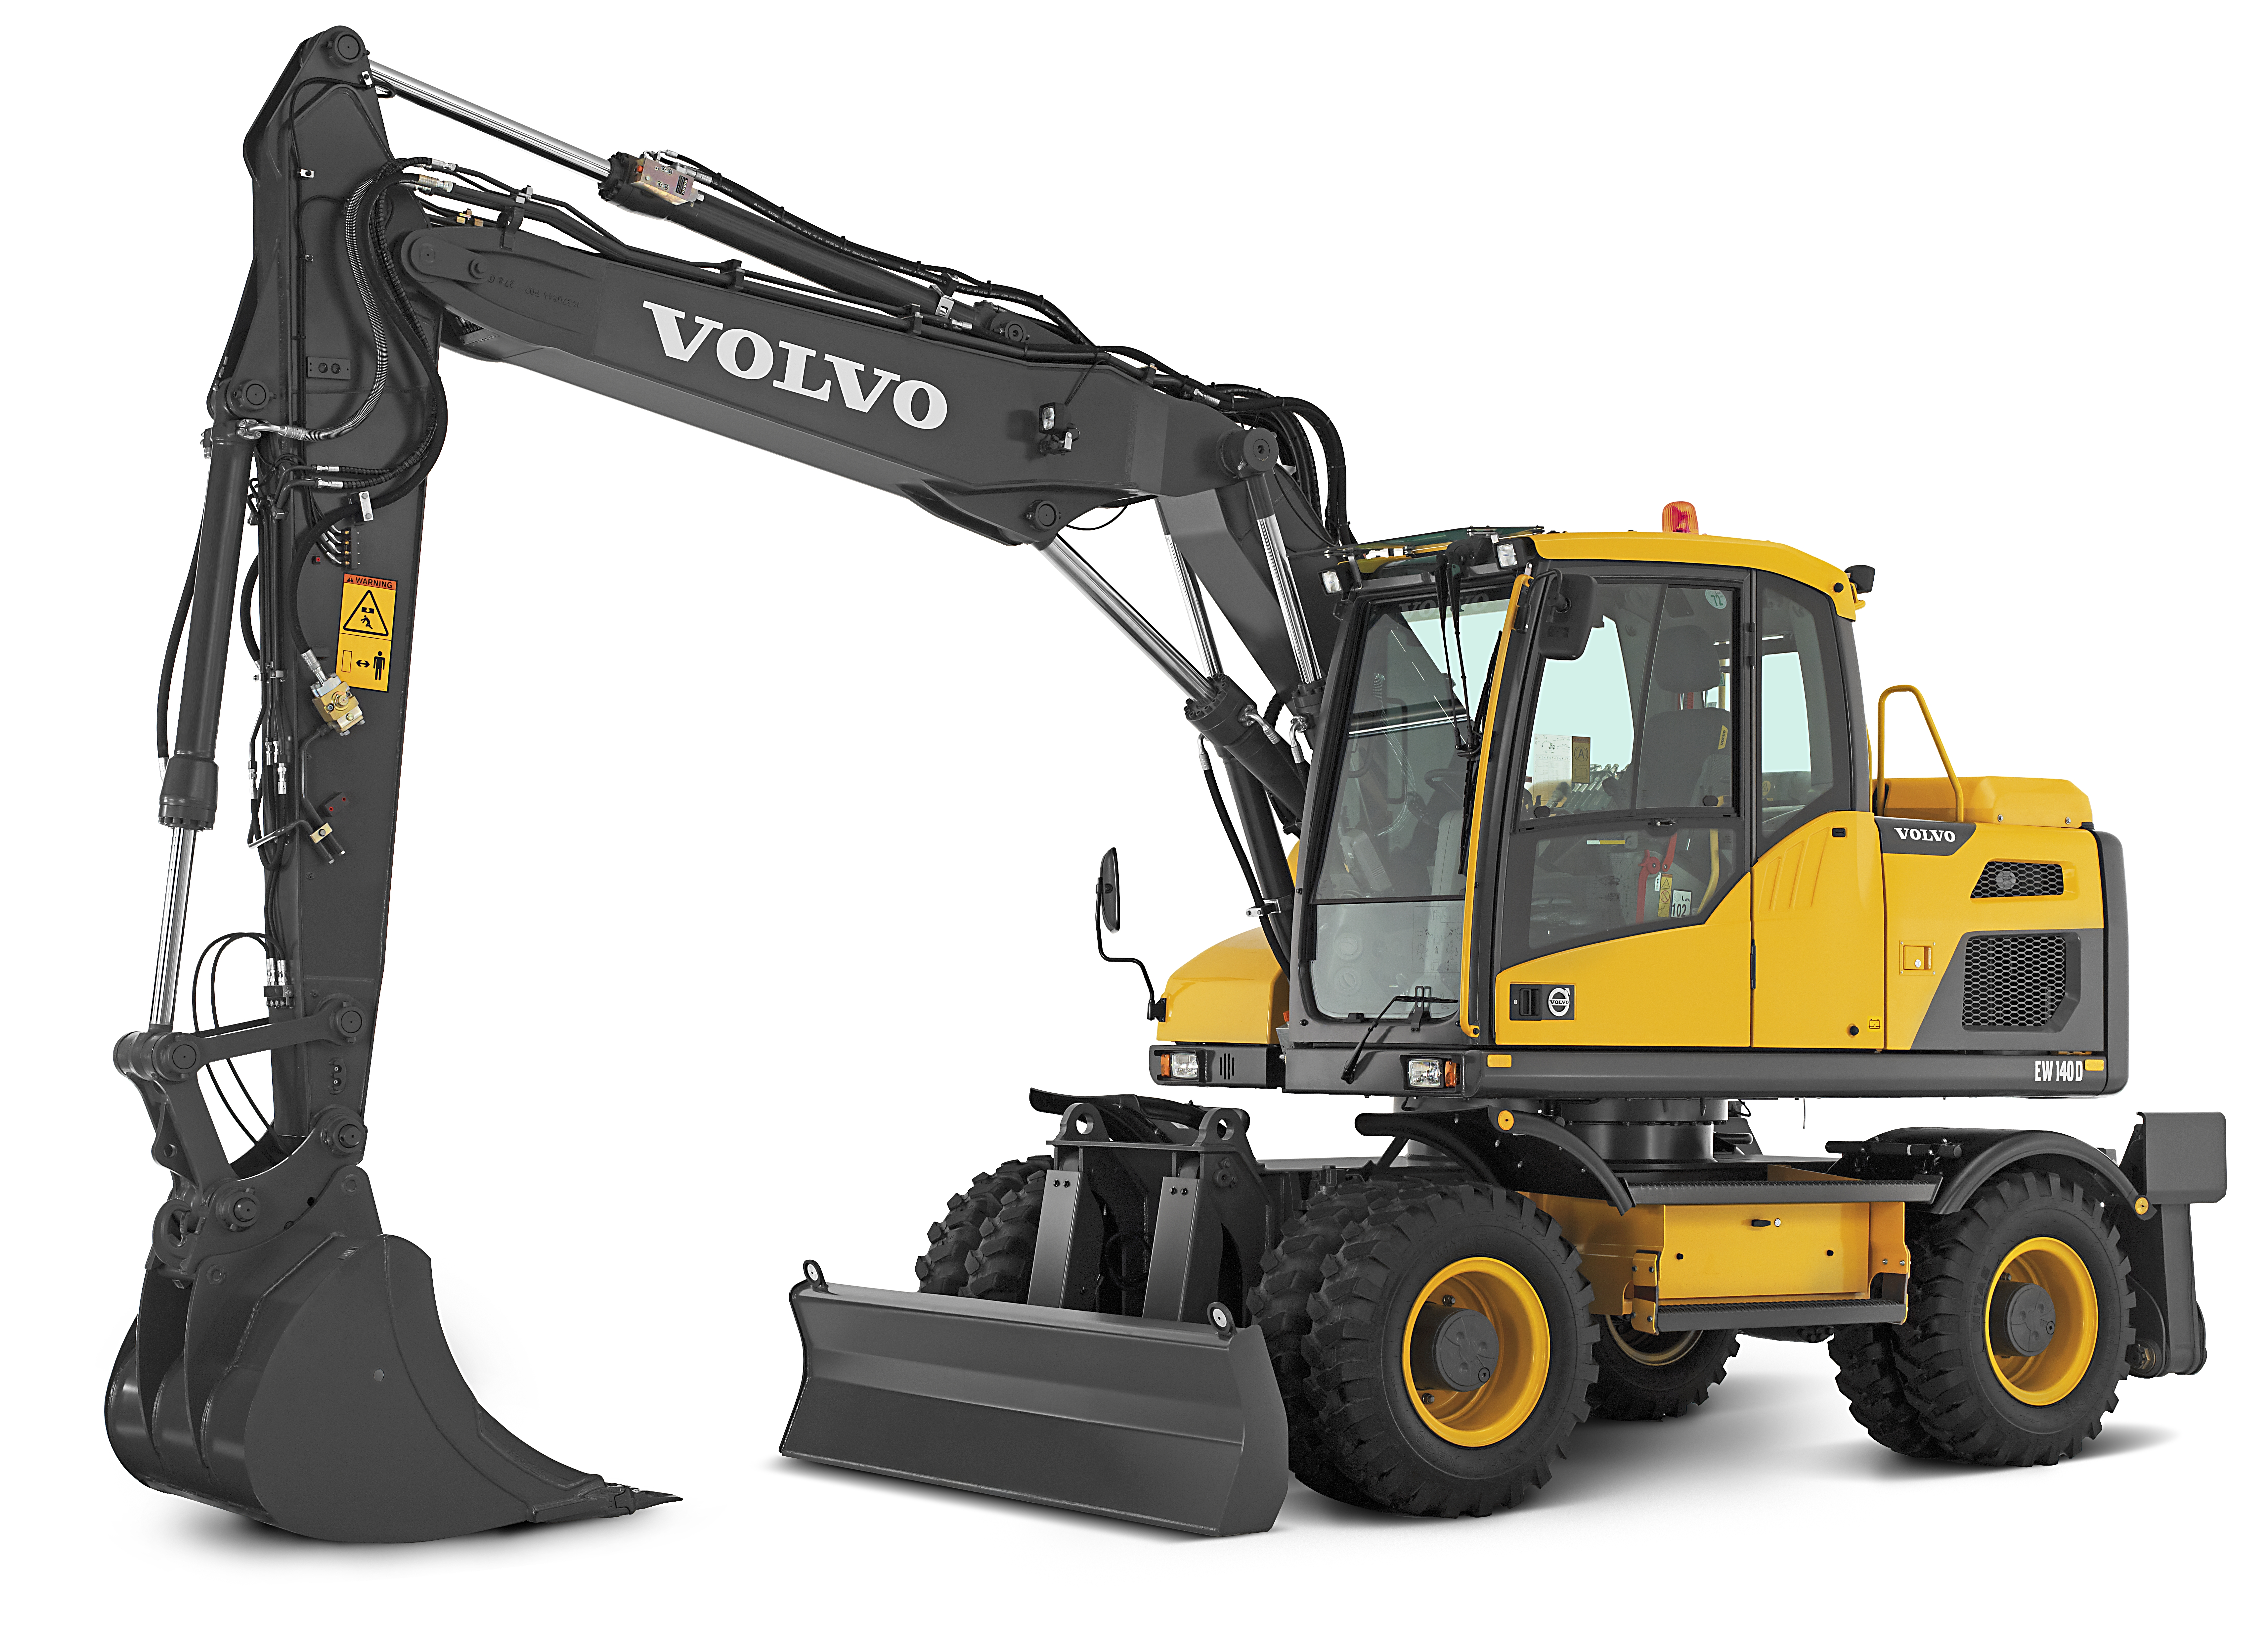 all excavator macchine store backhoe piccinini tracked volvo our ec b machines